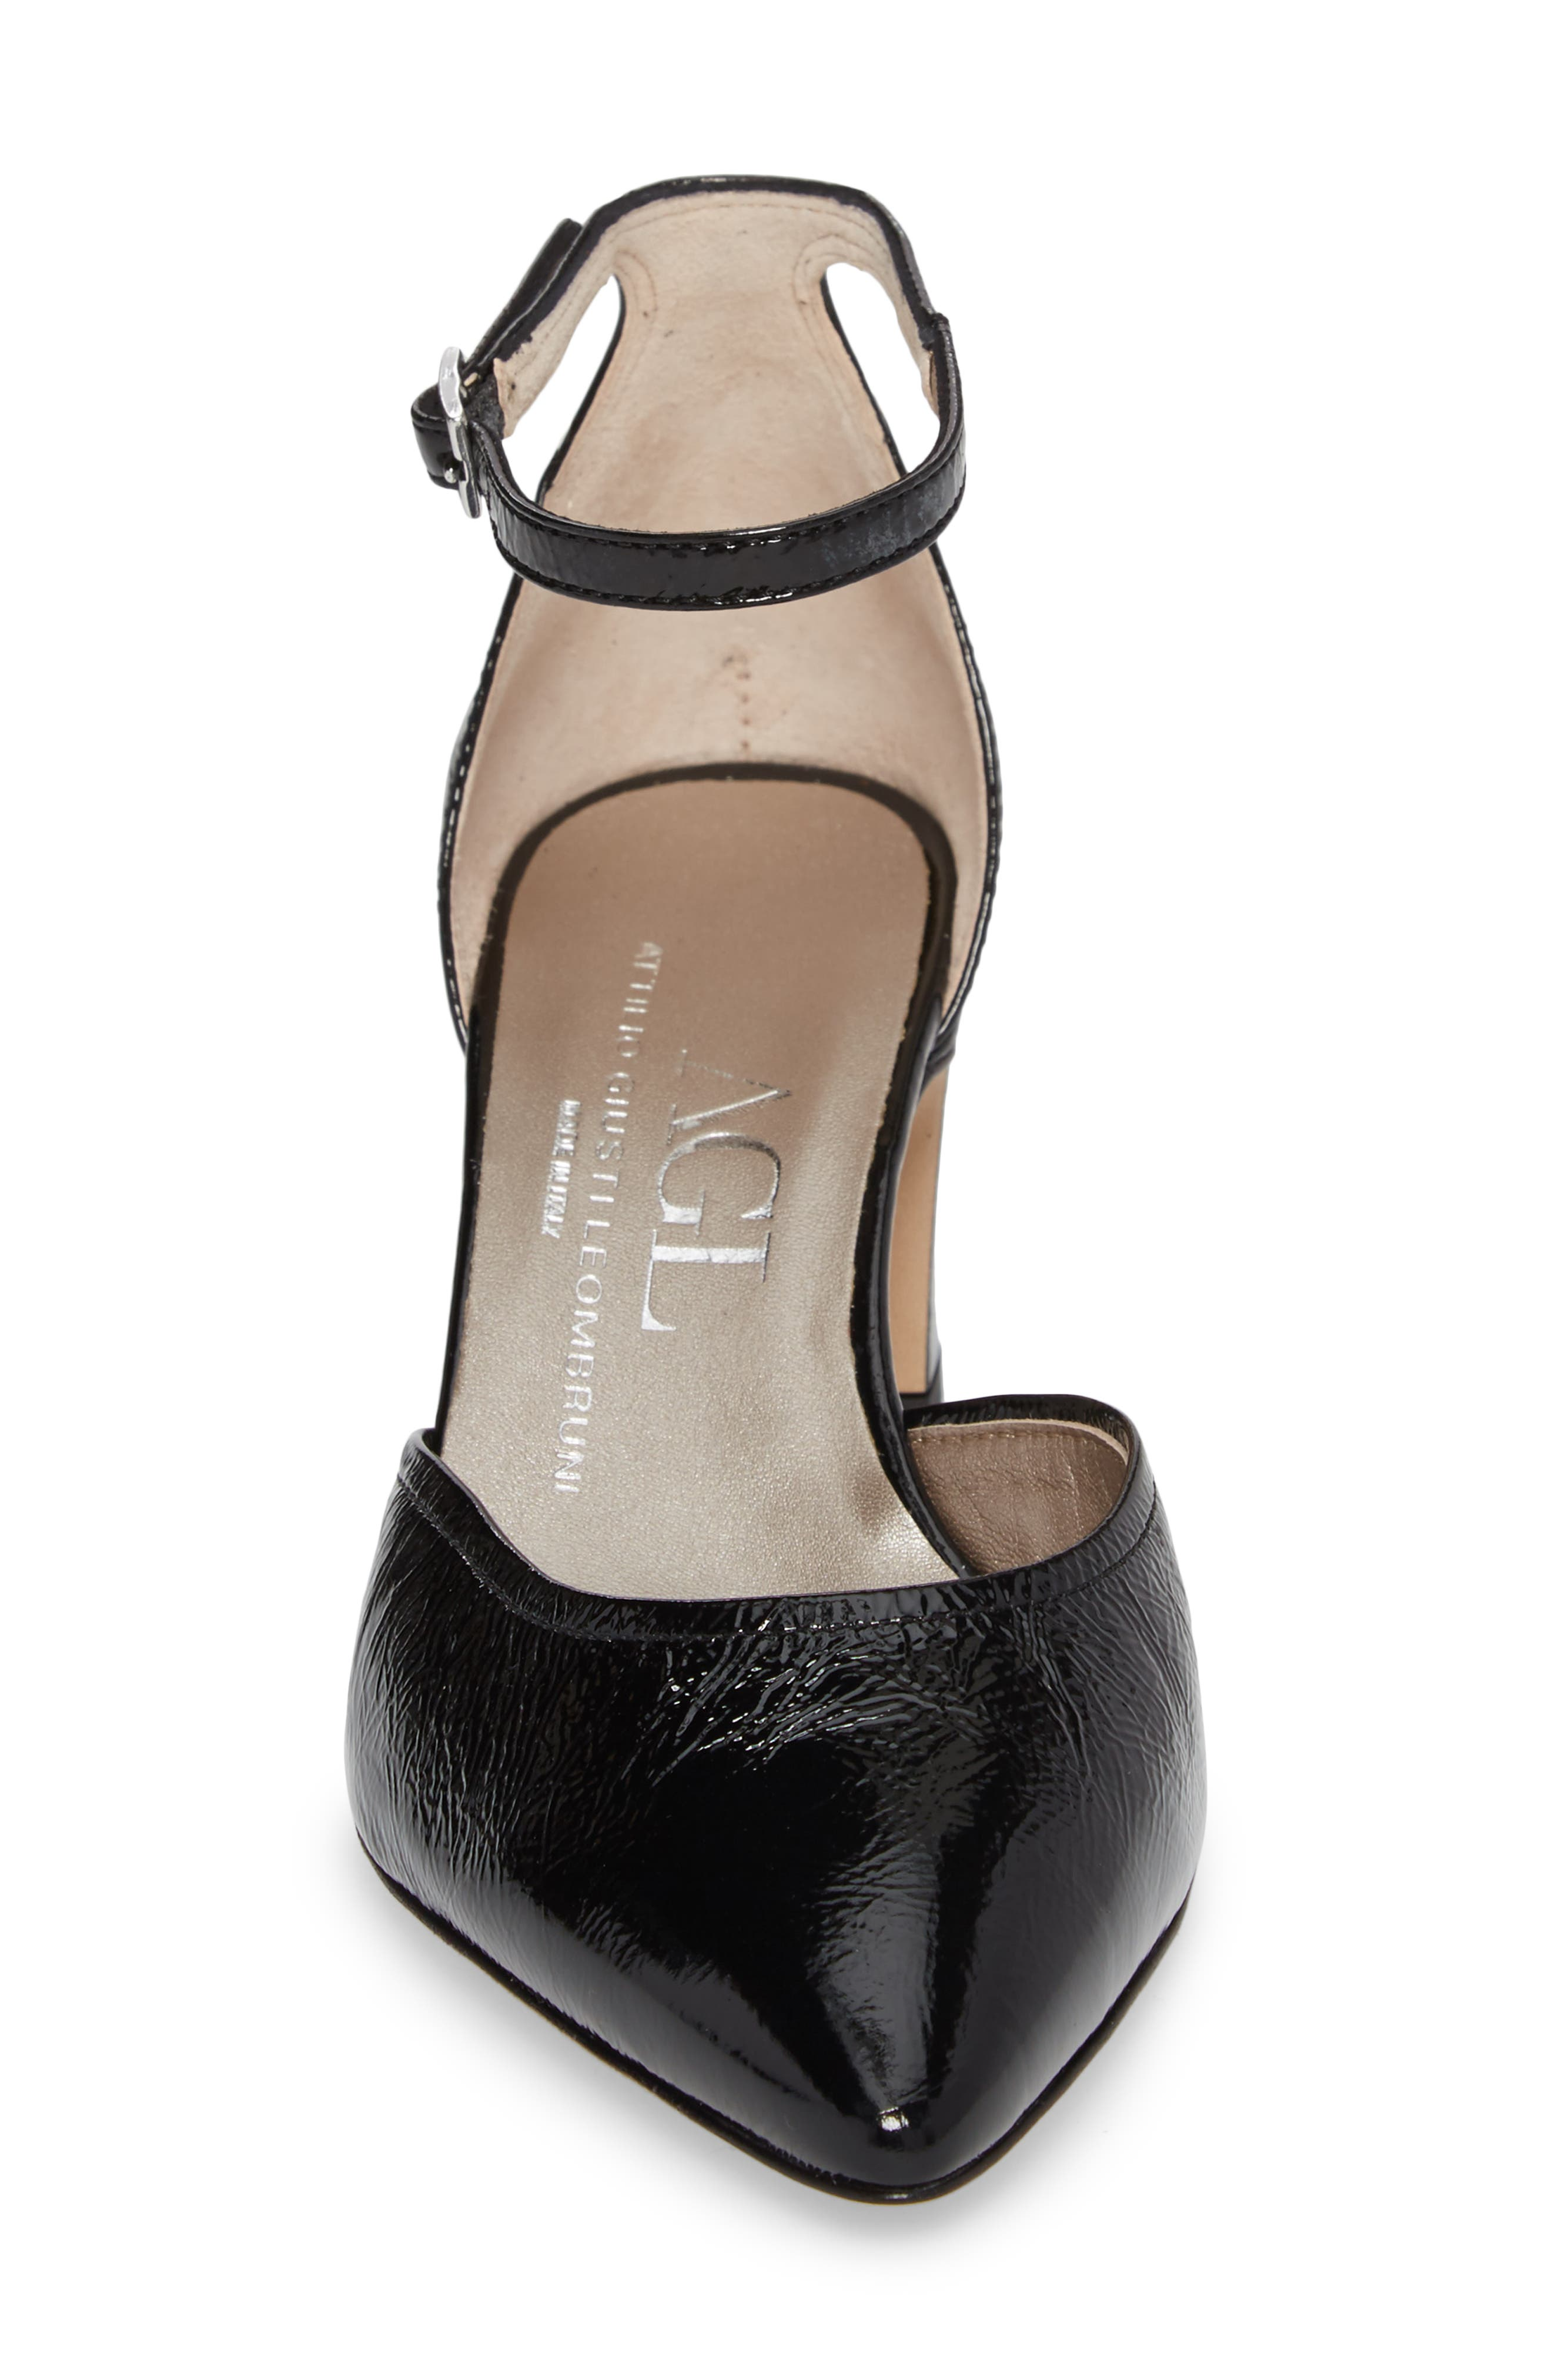 d'Orsay Ankle Strap Pump,                             Alternate thumbnail 4, color,                             BLACK GLAMMY LEATHER